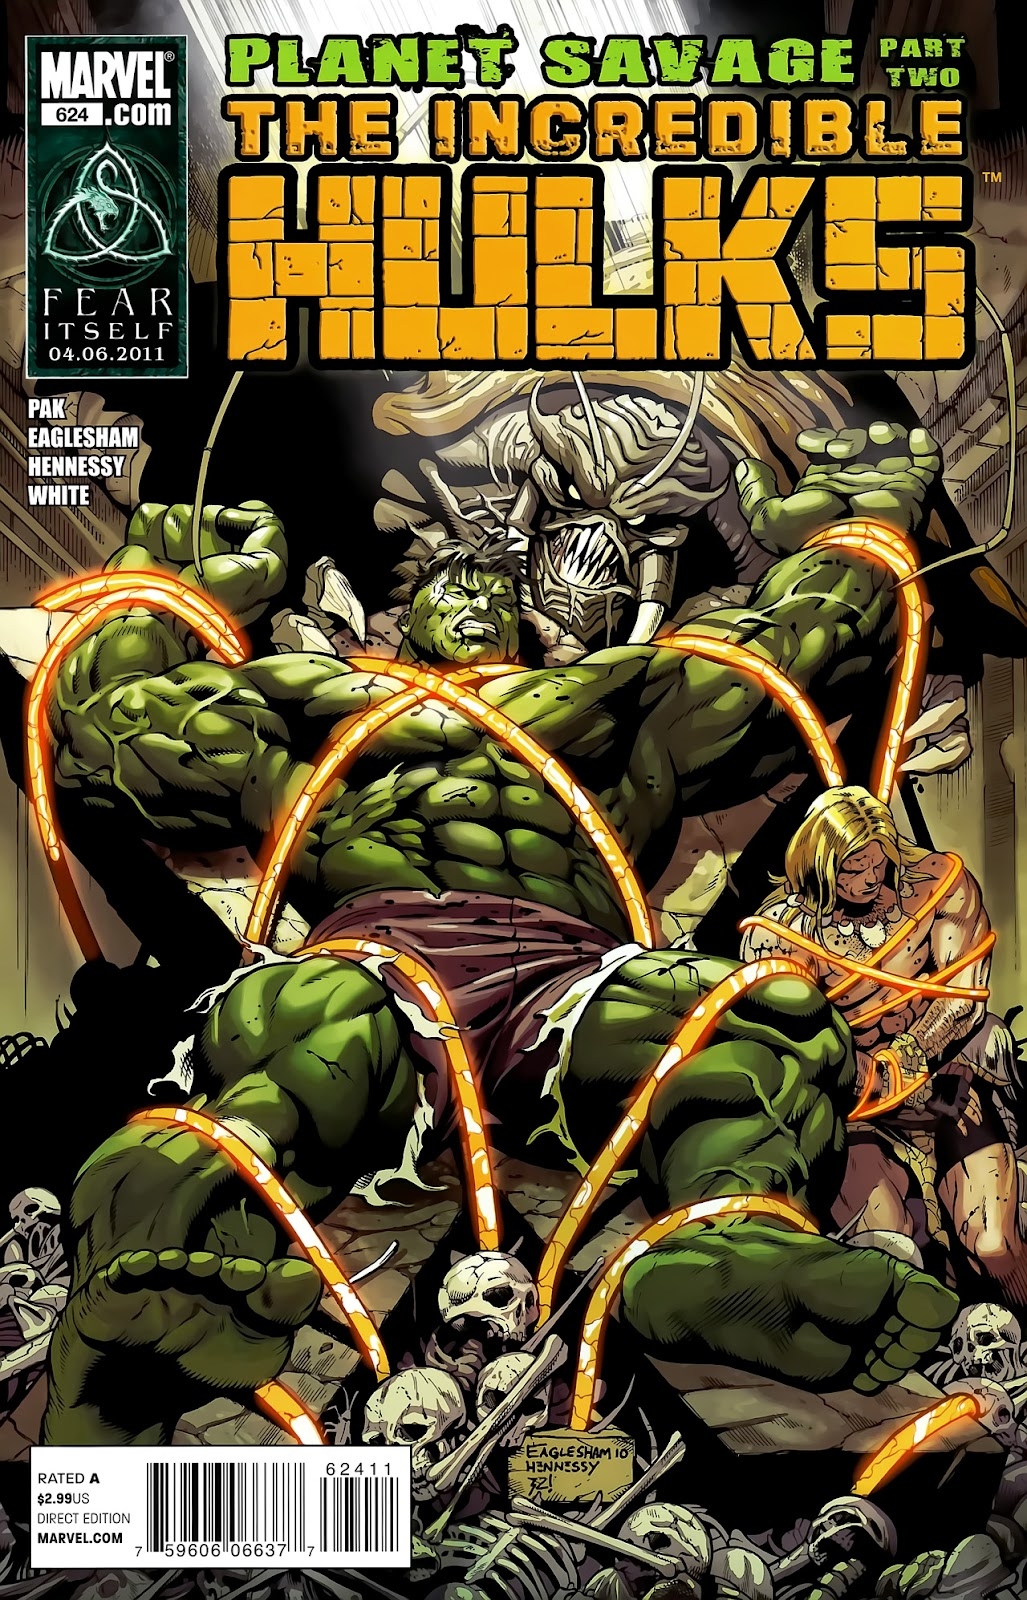 Incredible Hulks (2010) Issue #624 #14 - English 1